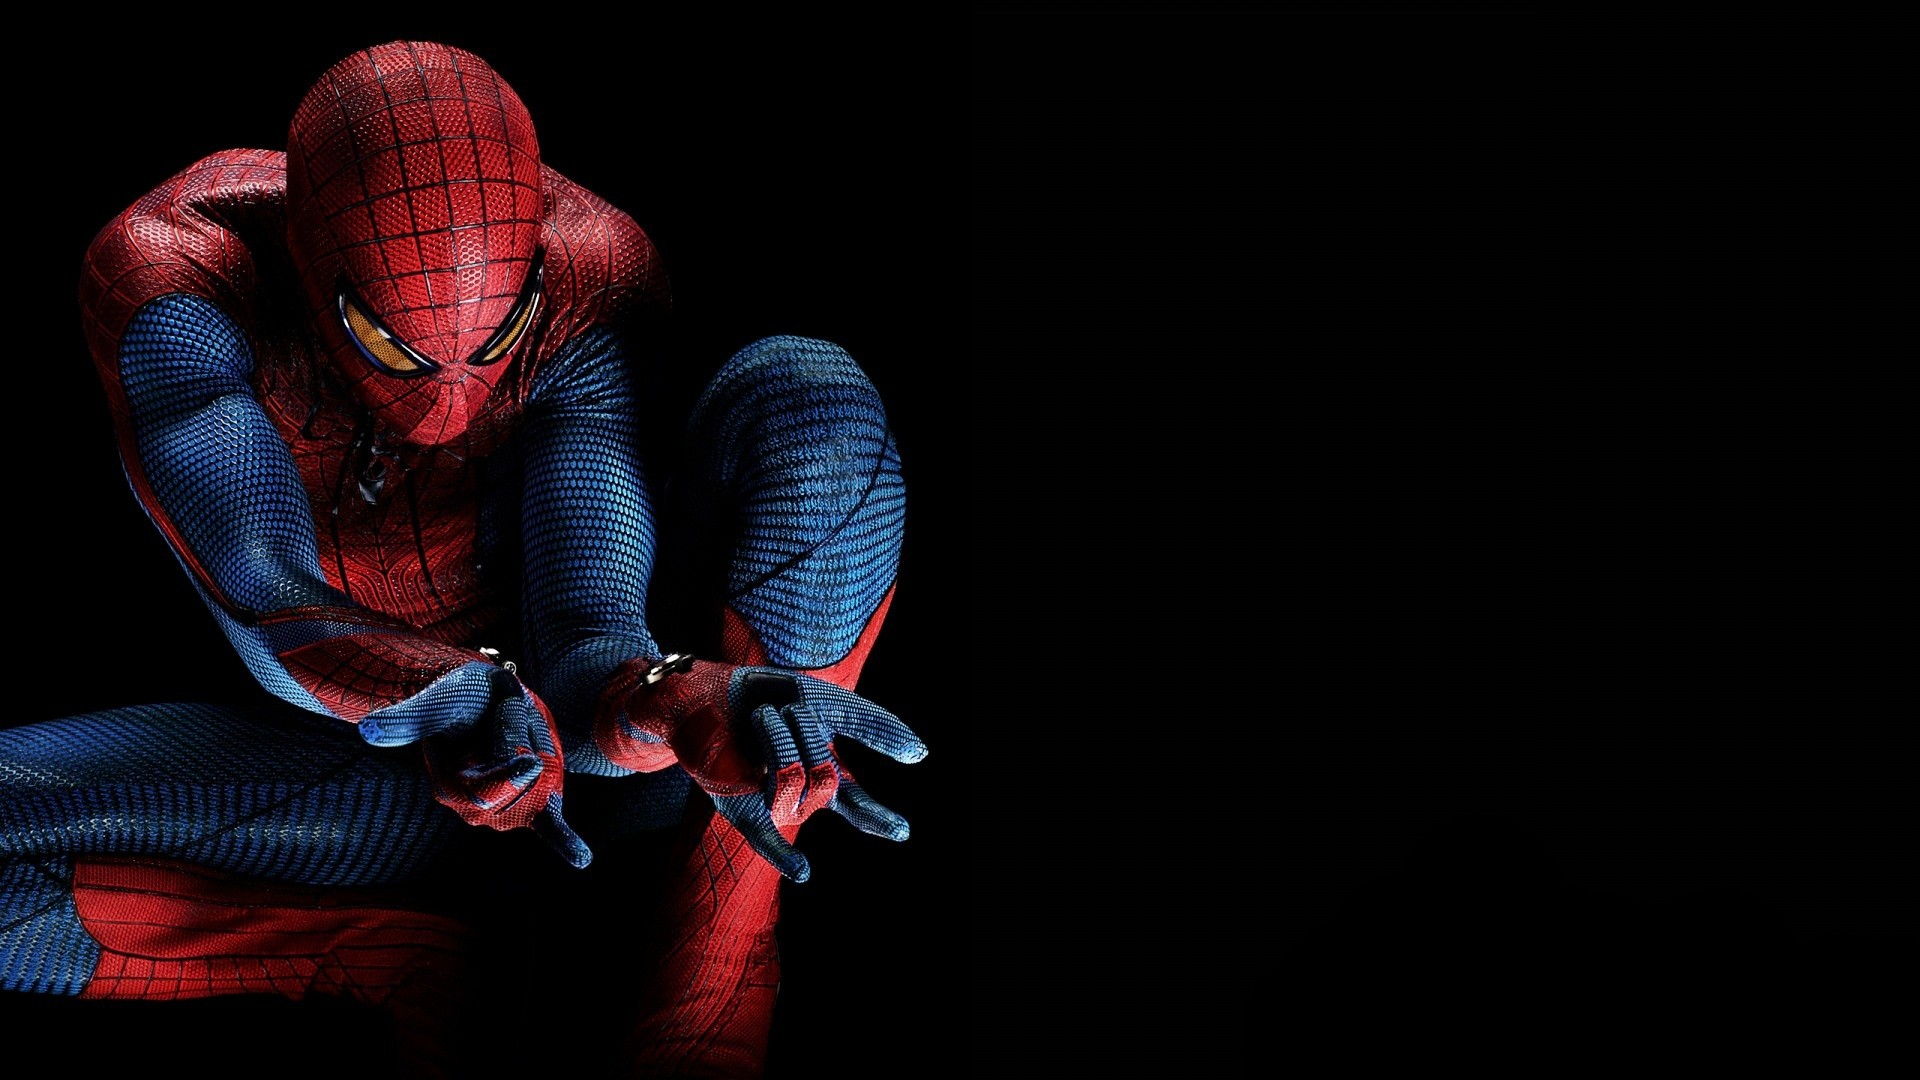 Spider man Marvel Wallpaper 1920x1080 Spiderman Marvel Black 1920x1080